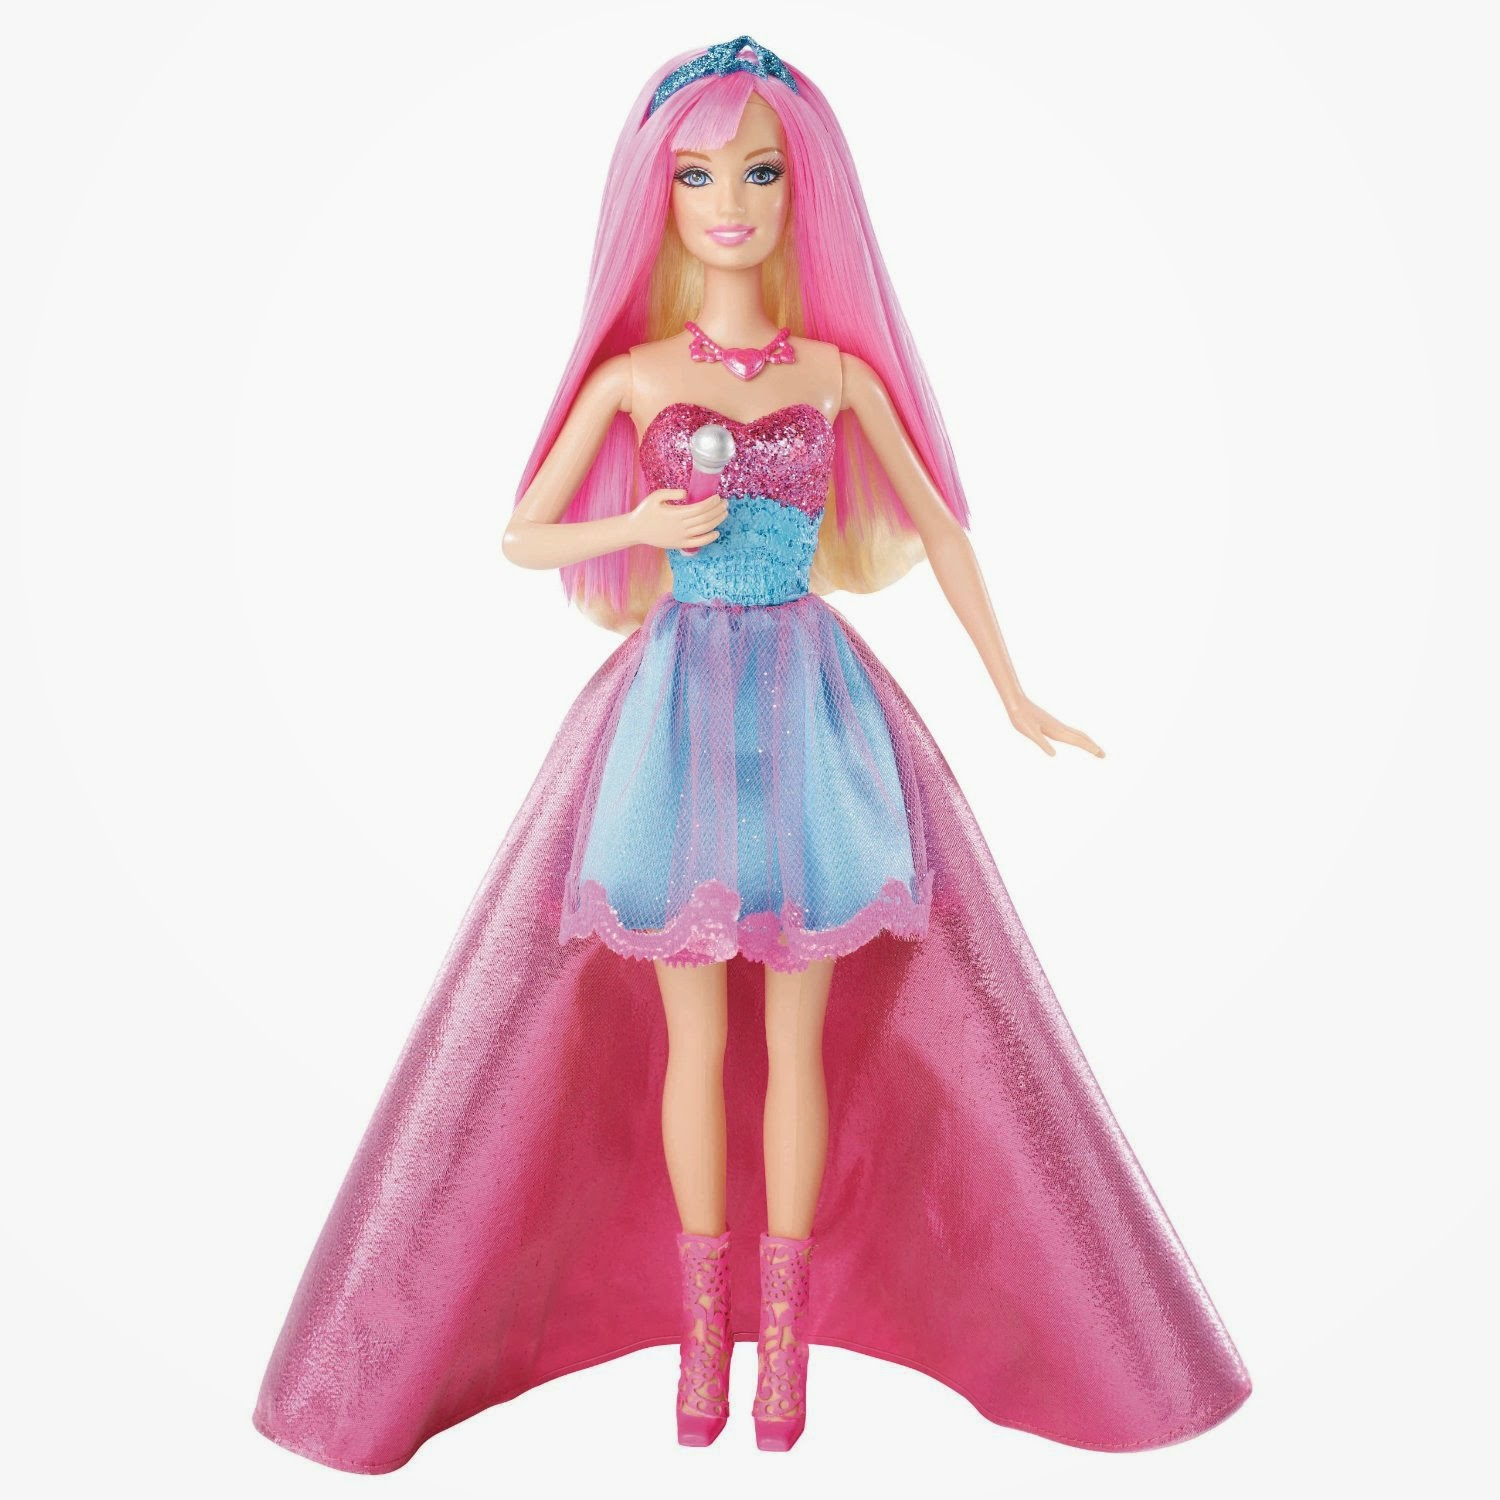 Culturina introduction films de barbie - Barbie en princesse ...